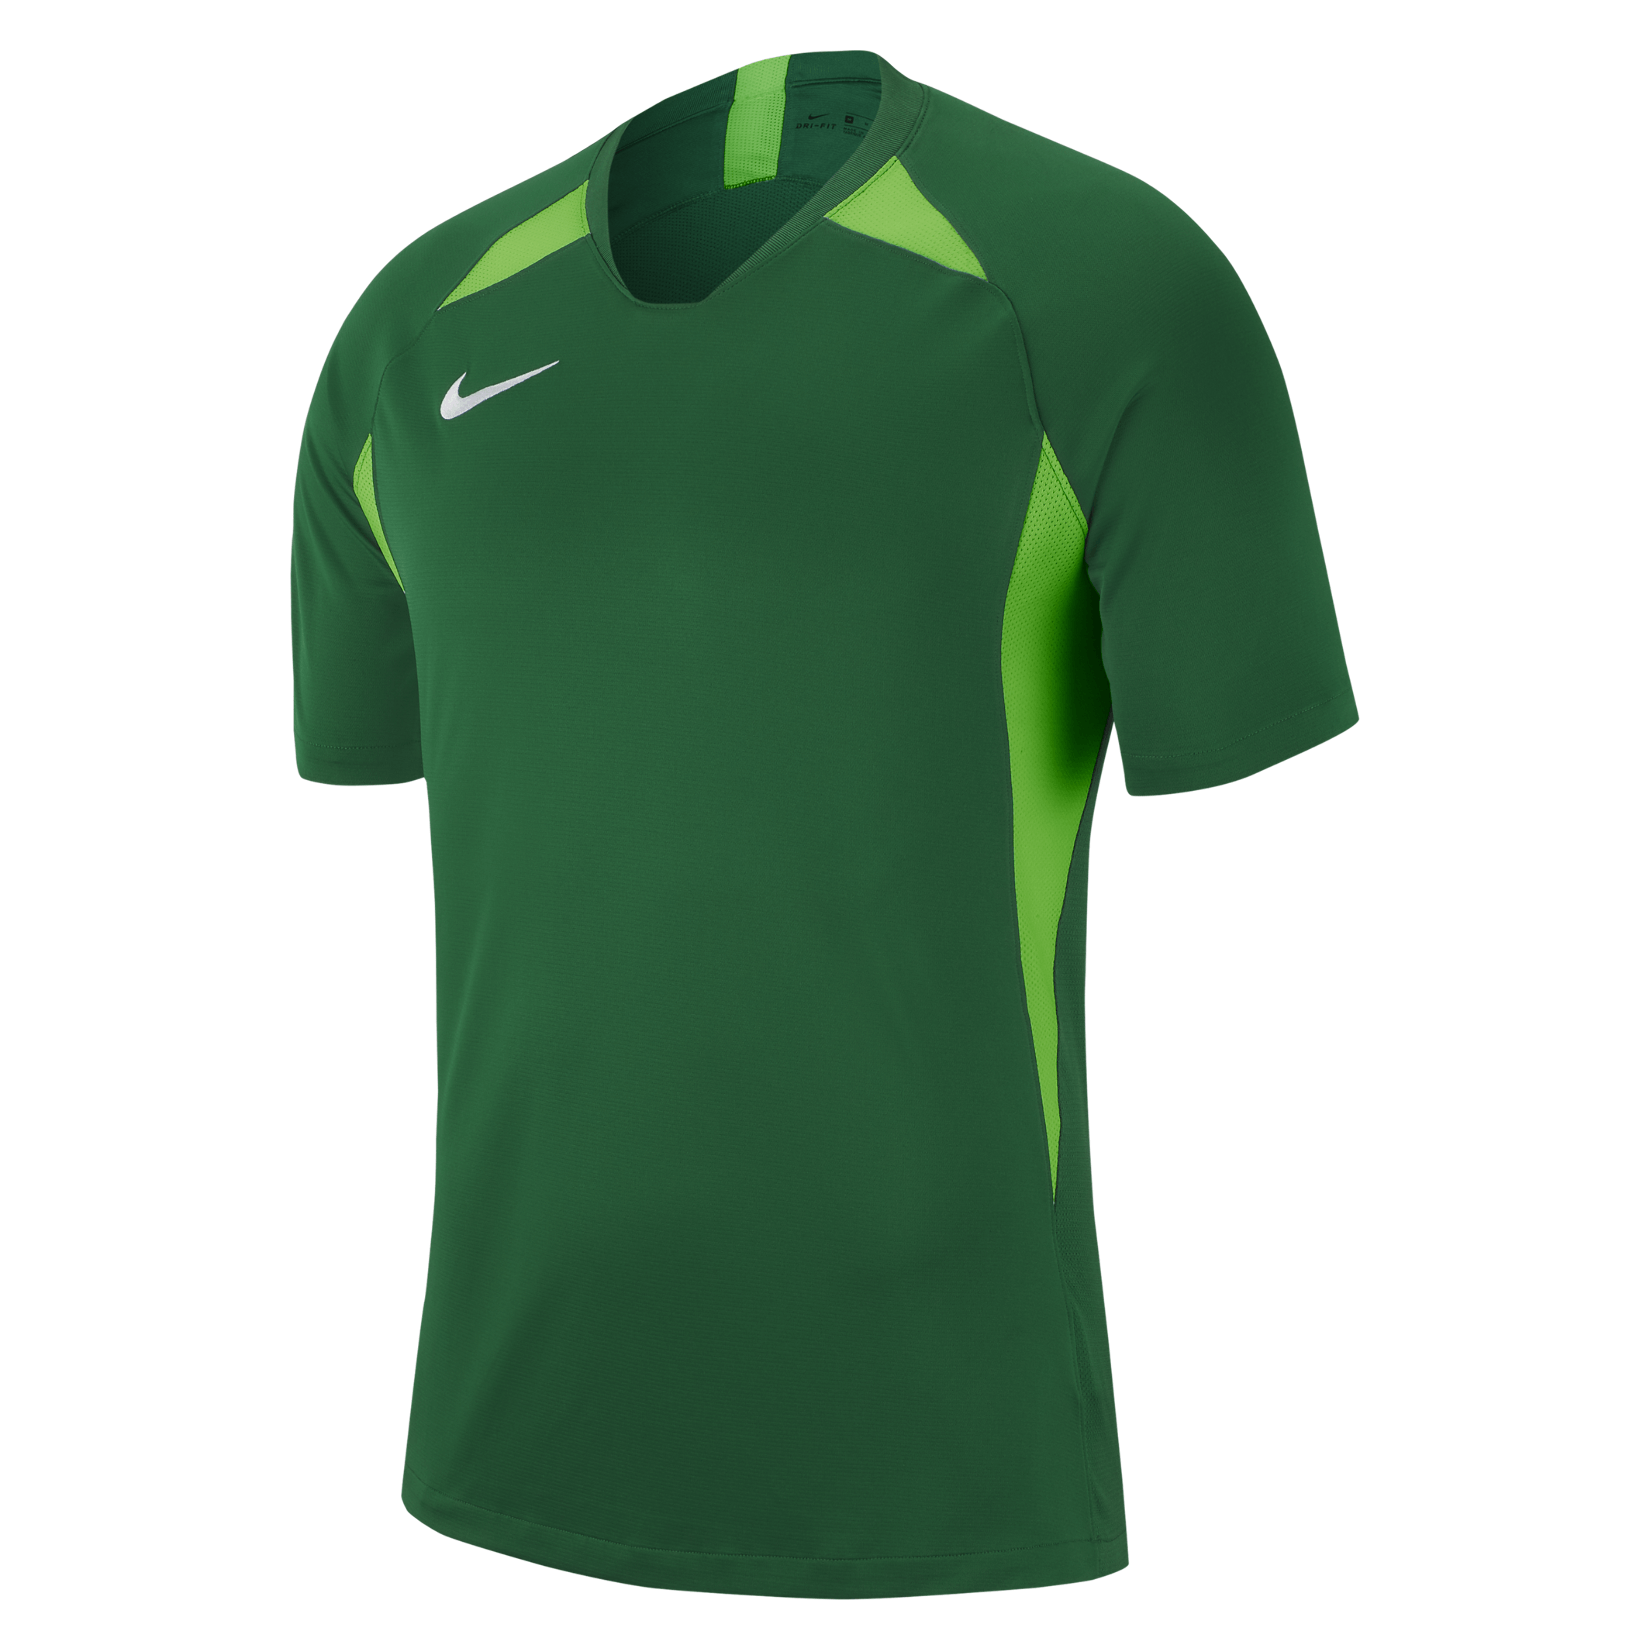 Nike Legend Short Sleeve Jersey Pine Green-Action Green-White